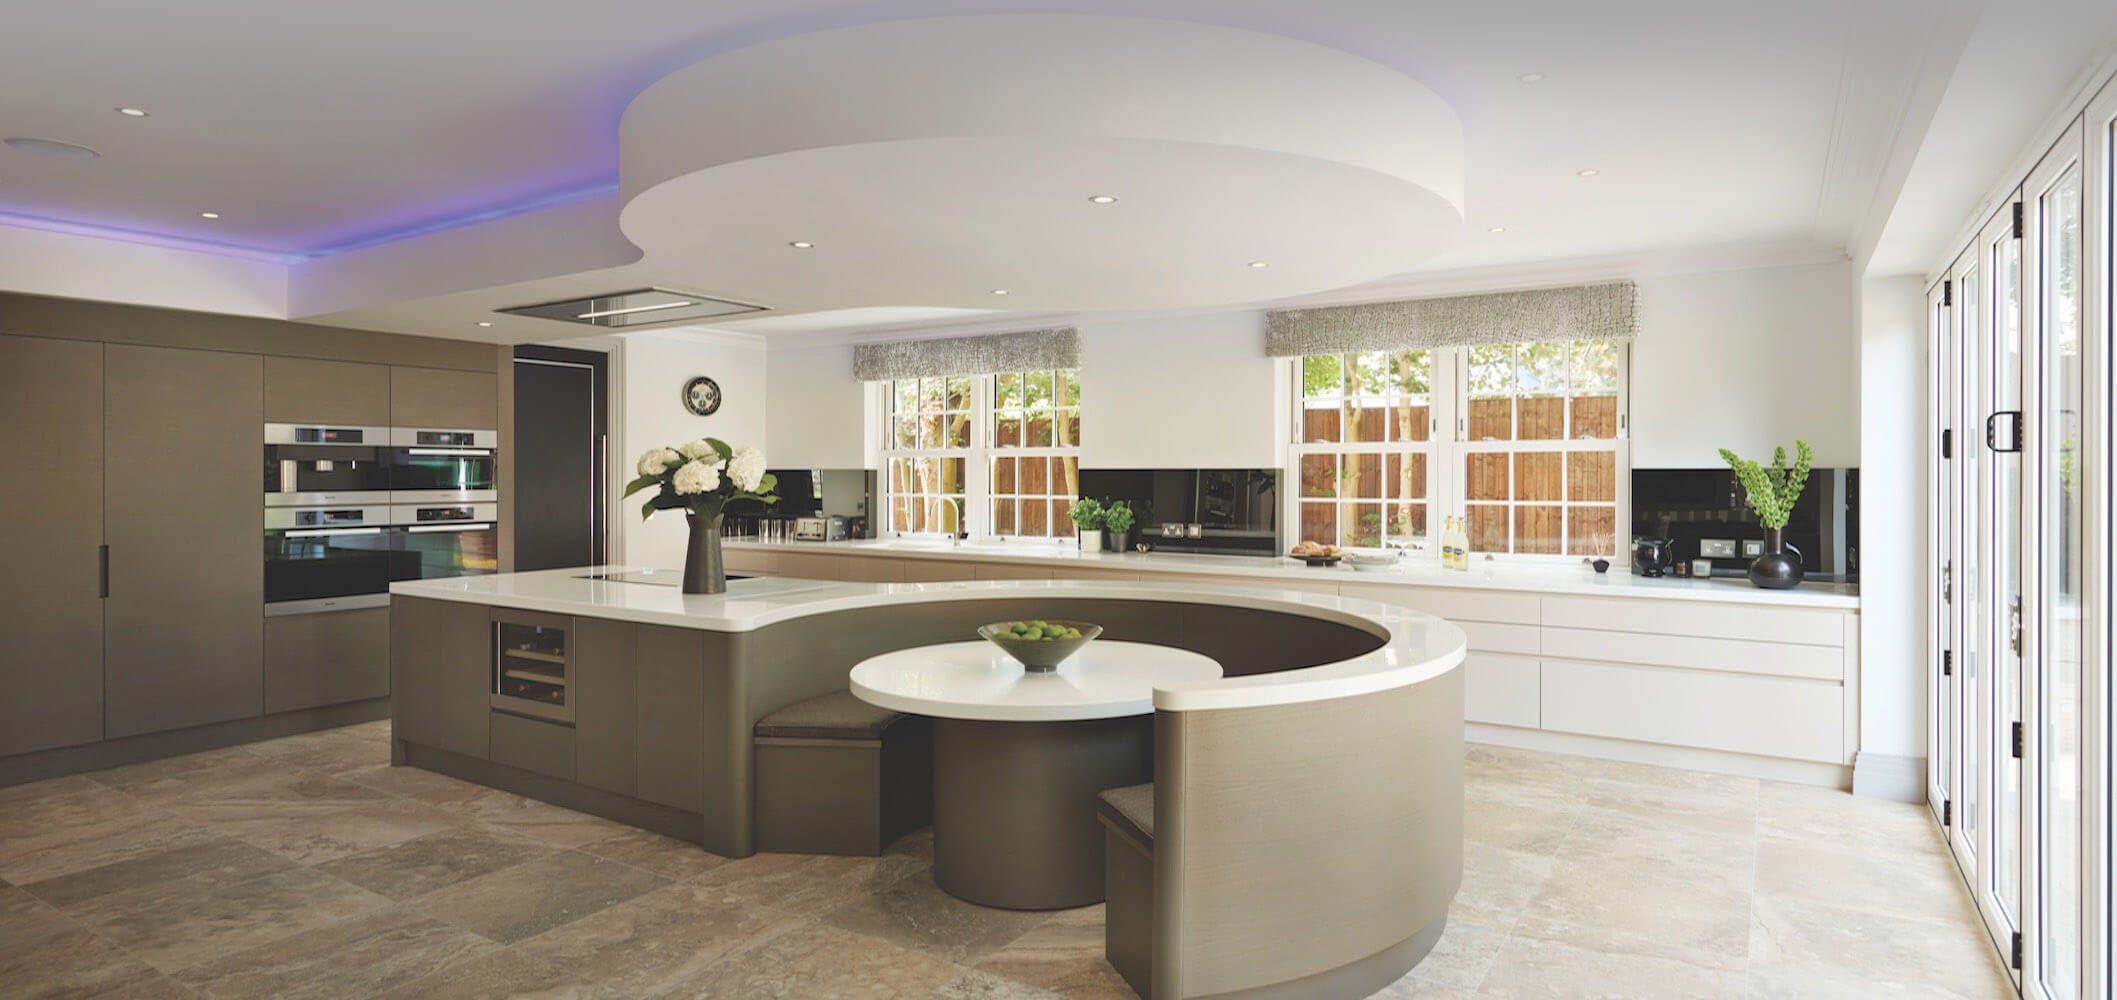 Kitchen Design With Round Island 20 State Of The Art Modern Kitchen Designs By Reeva Design